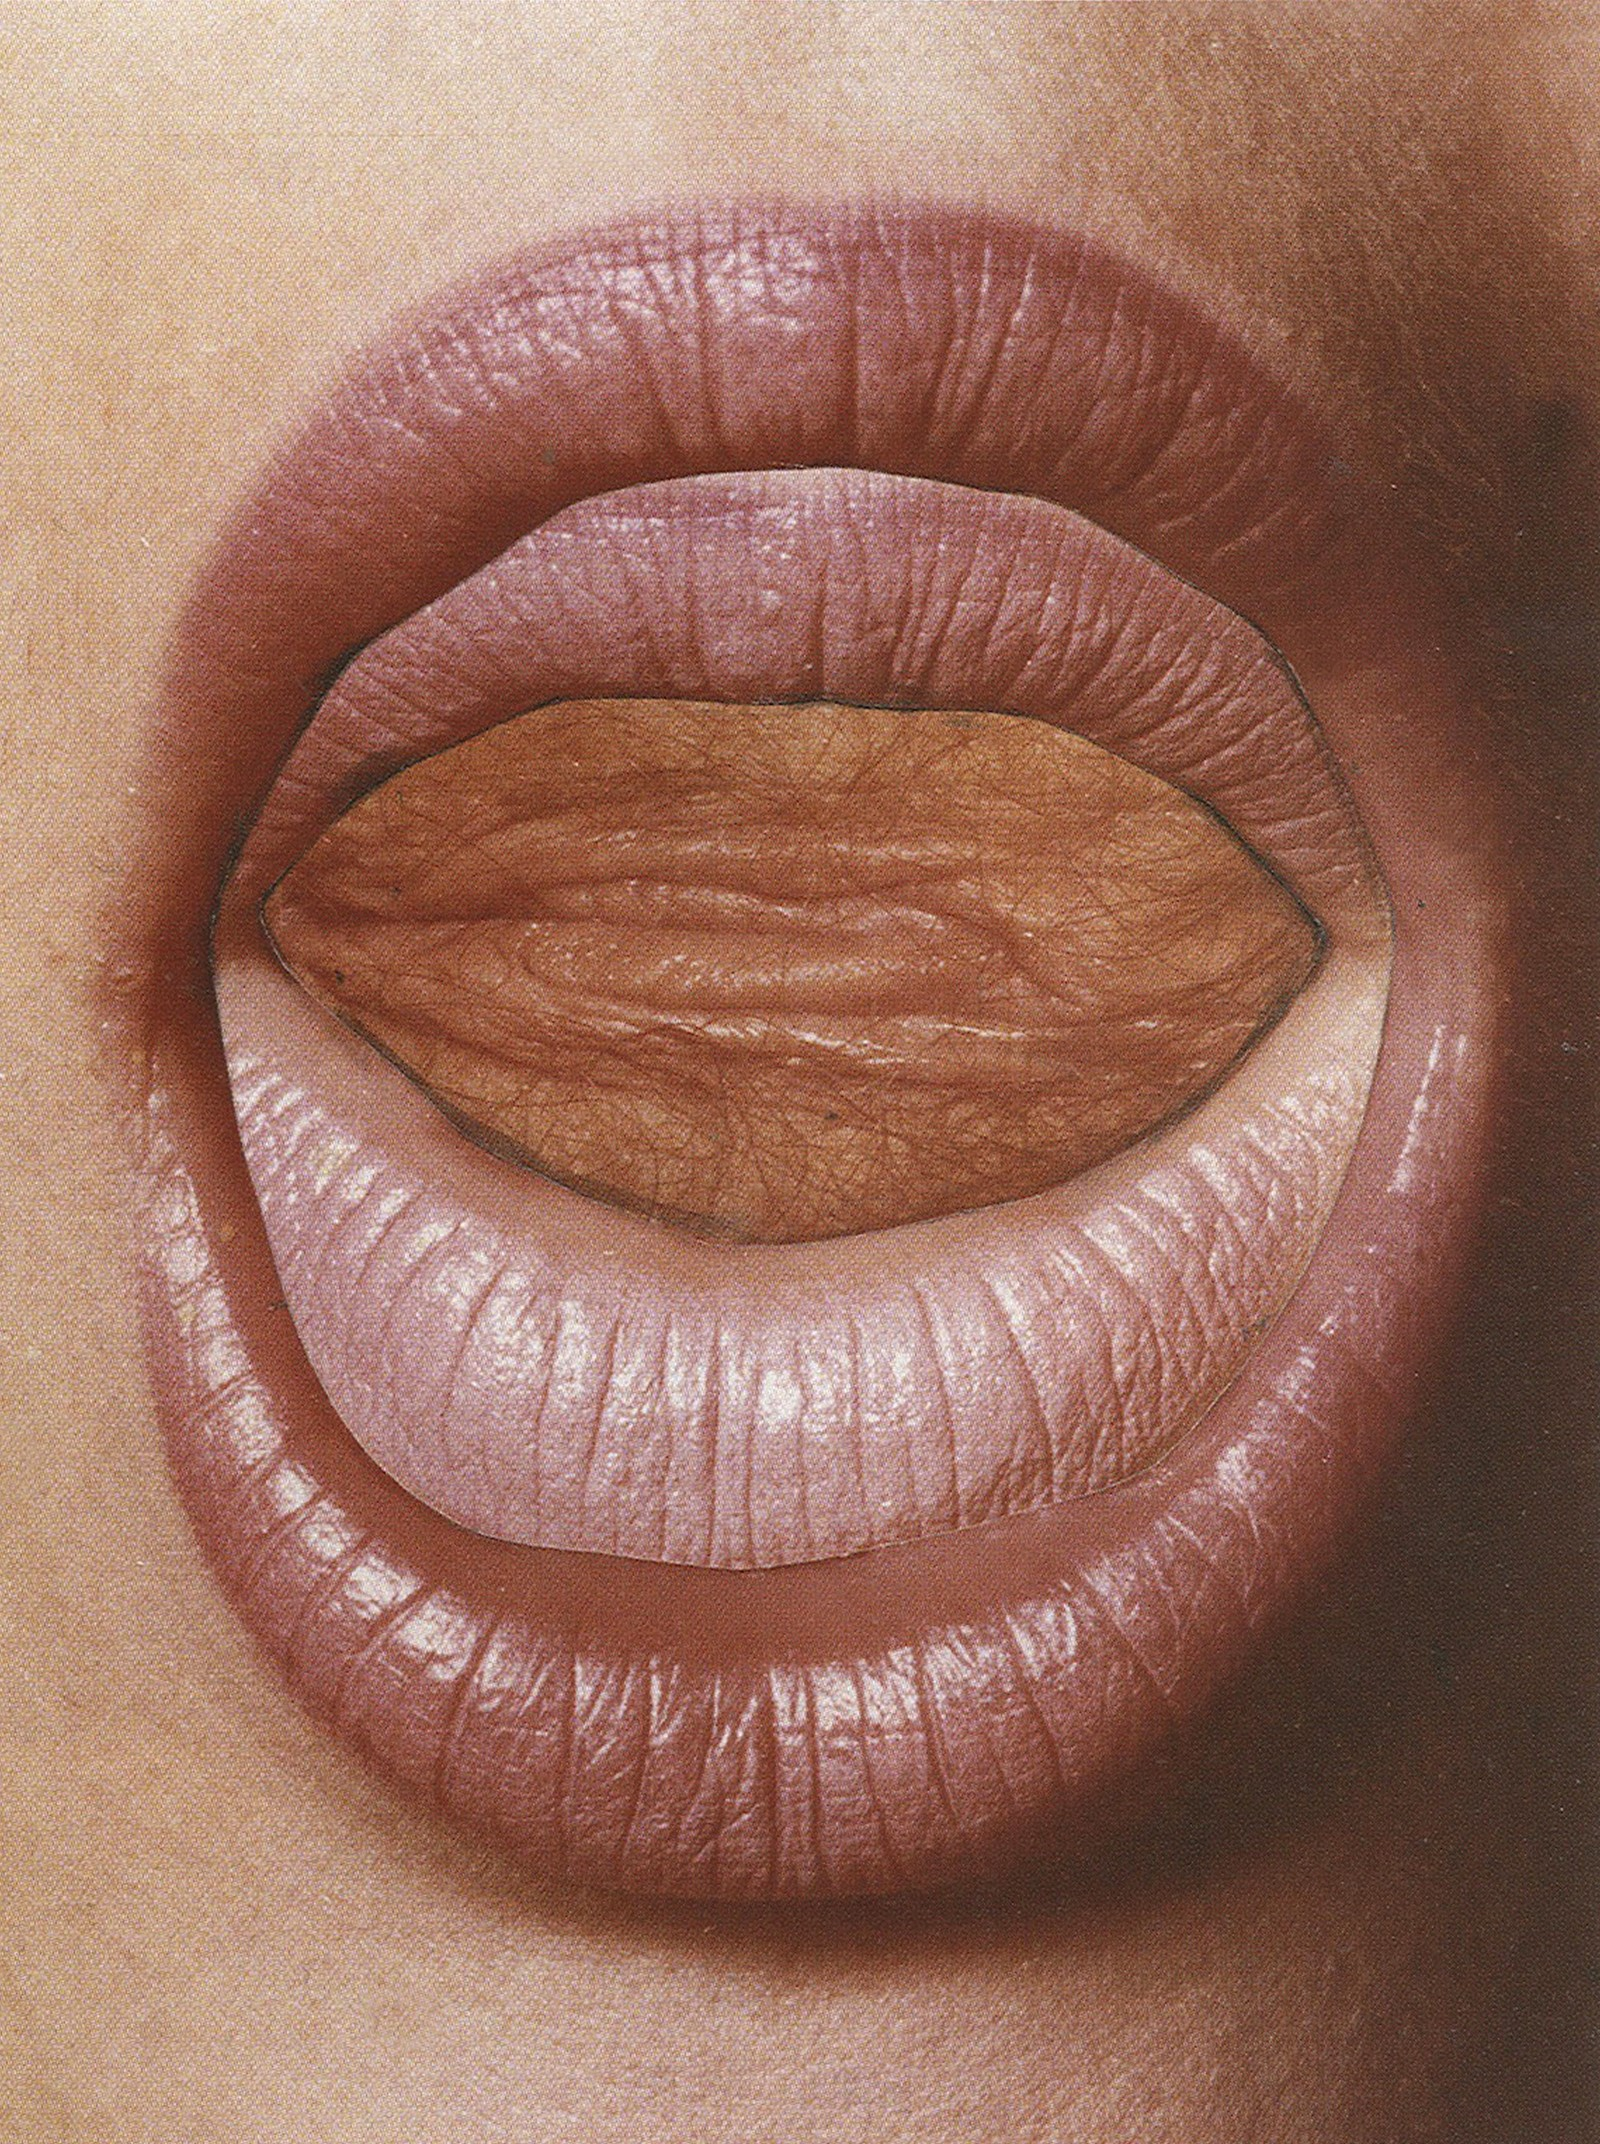 Read My Lips_1973_Penrose collection